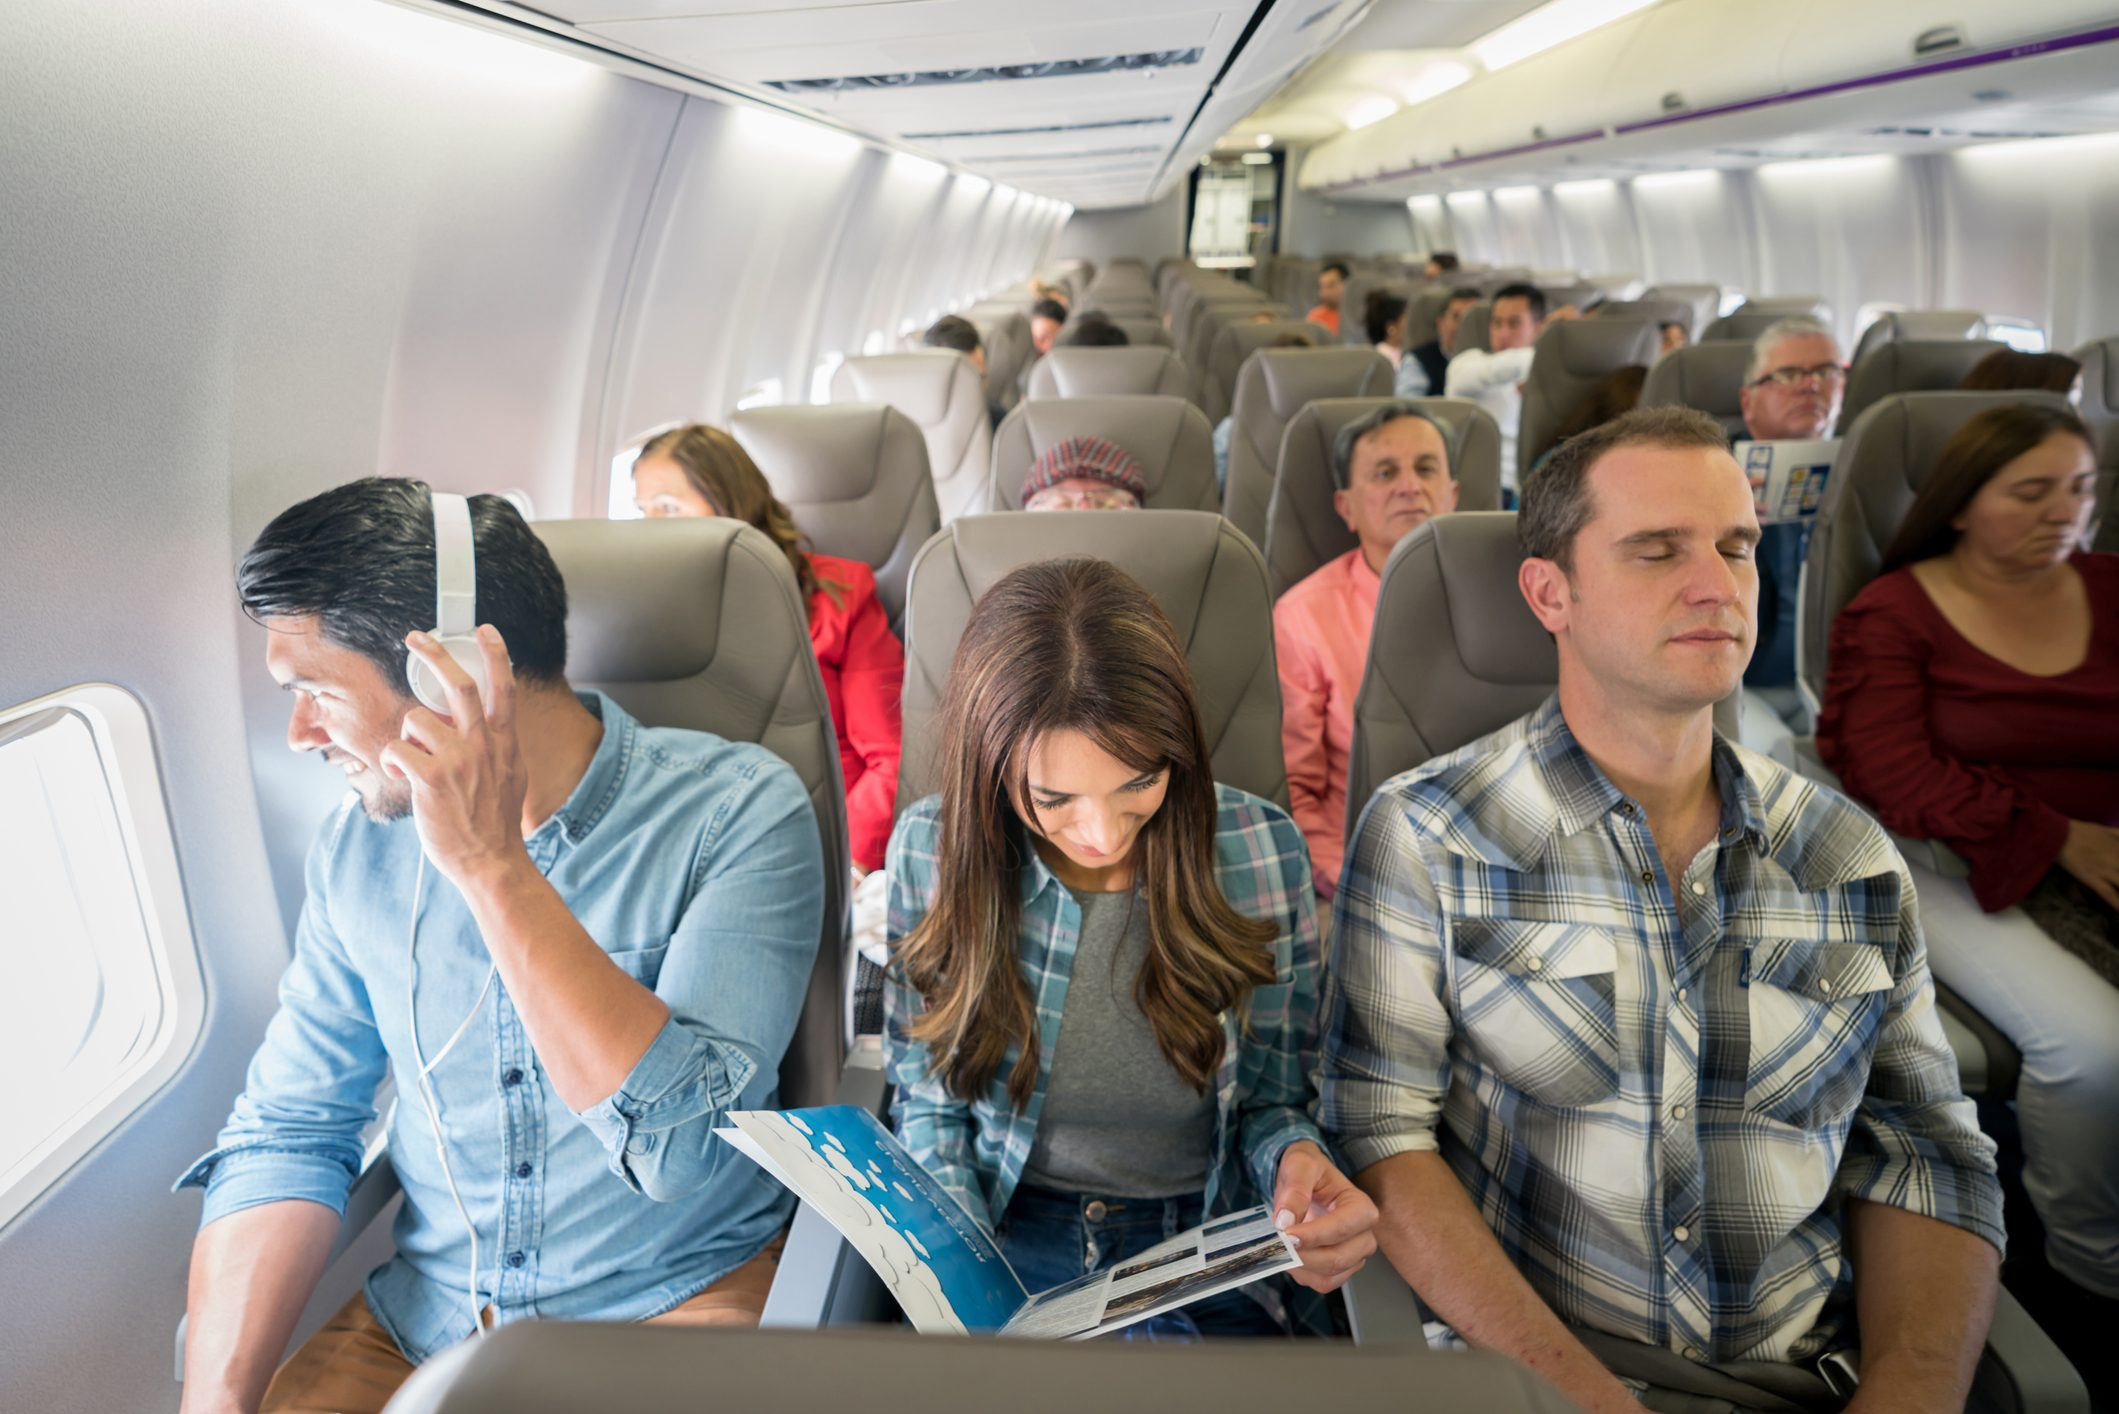 Latin American people traveling by plane